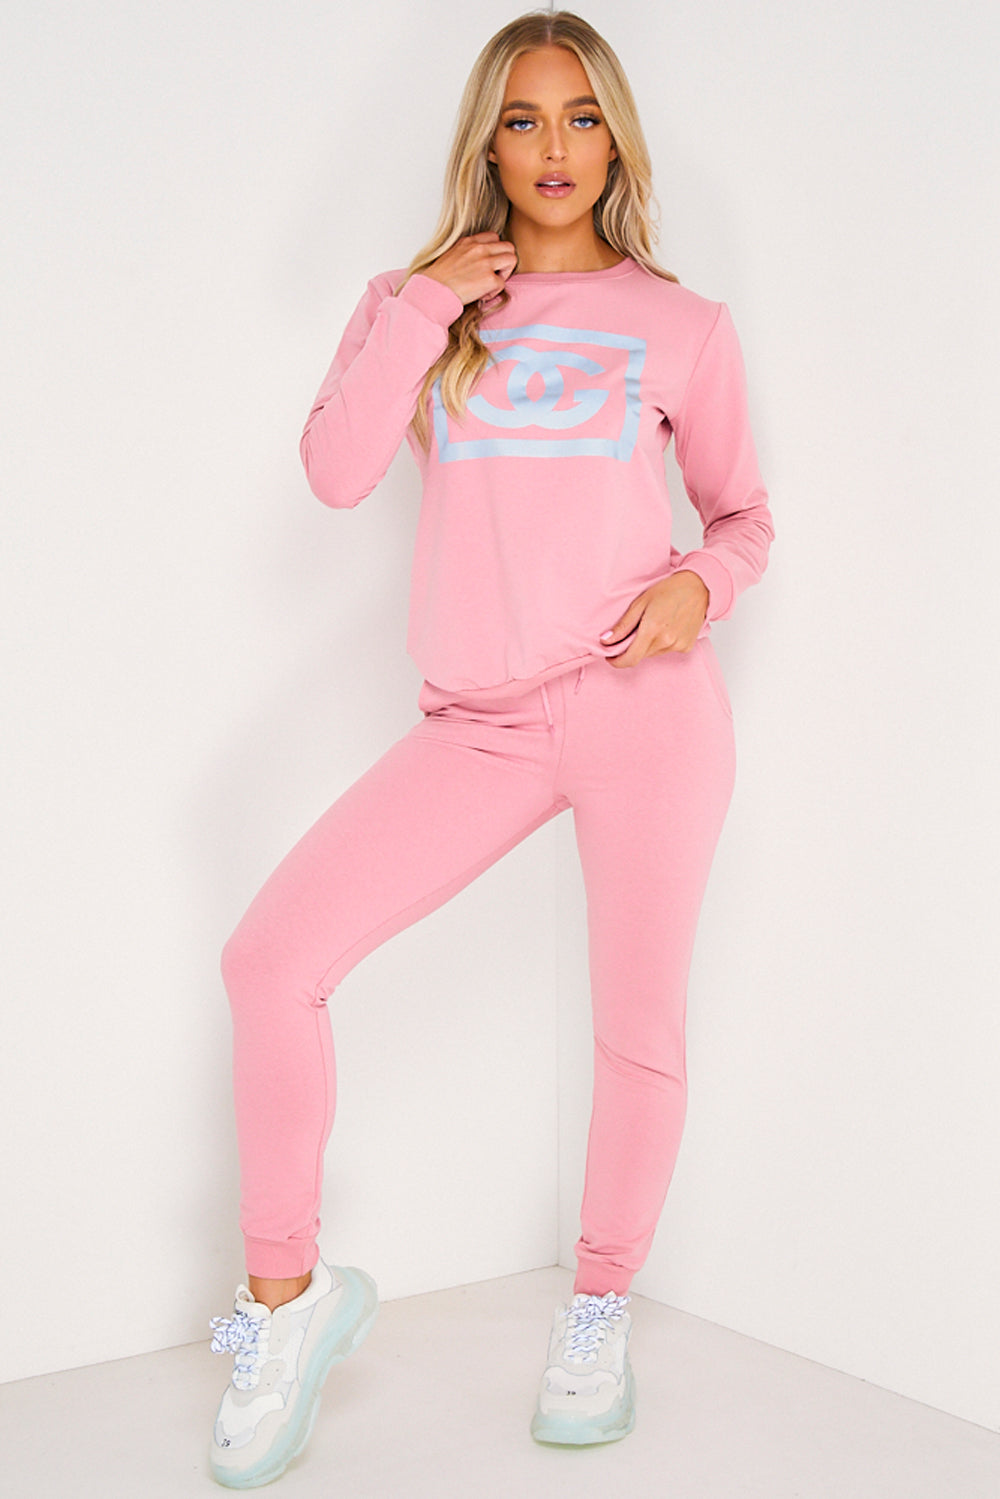 Pink CG Printed Jumper and Joggers Tracksuit Set